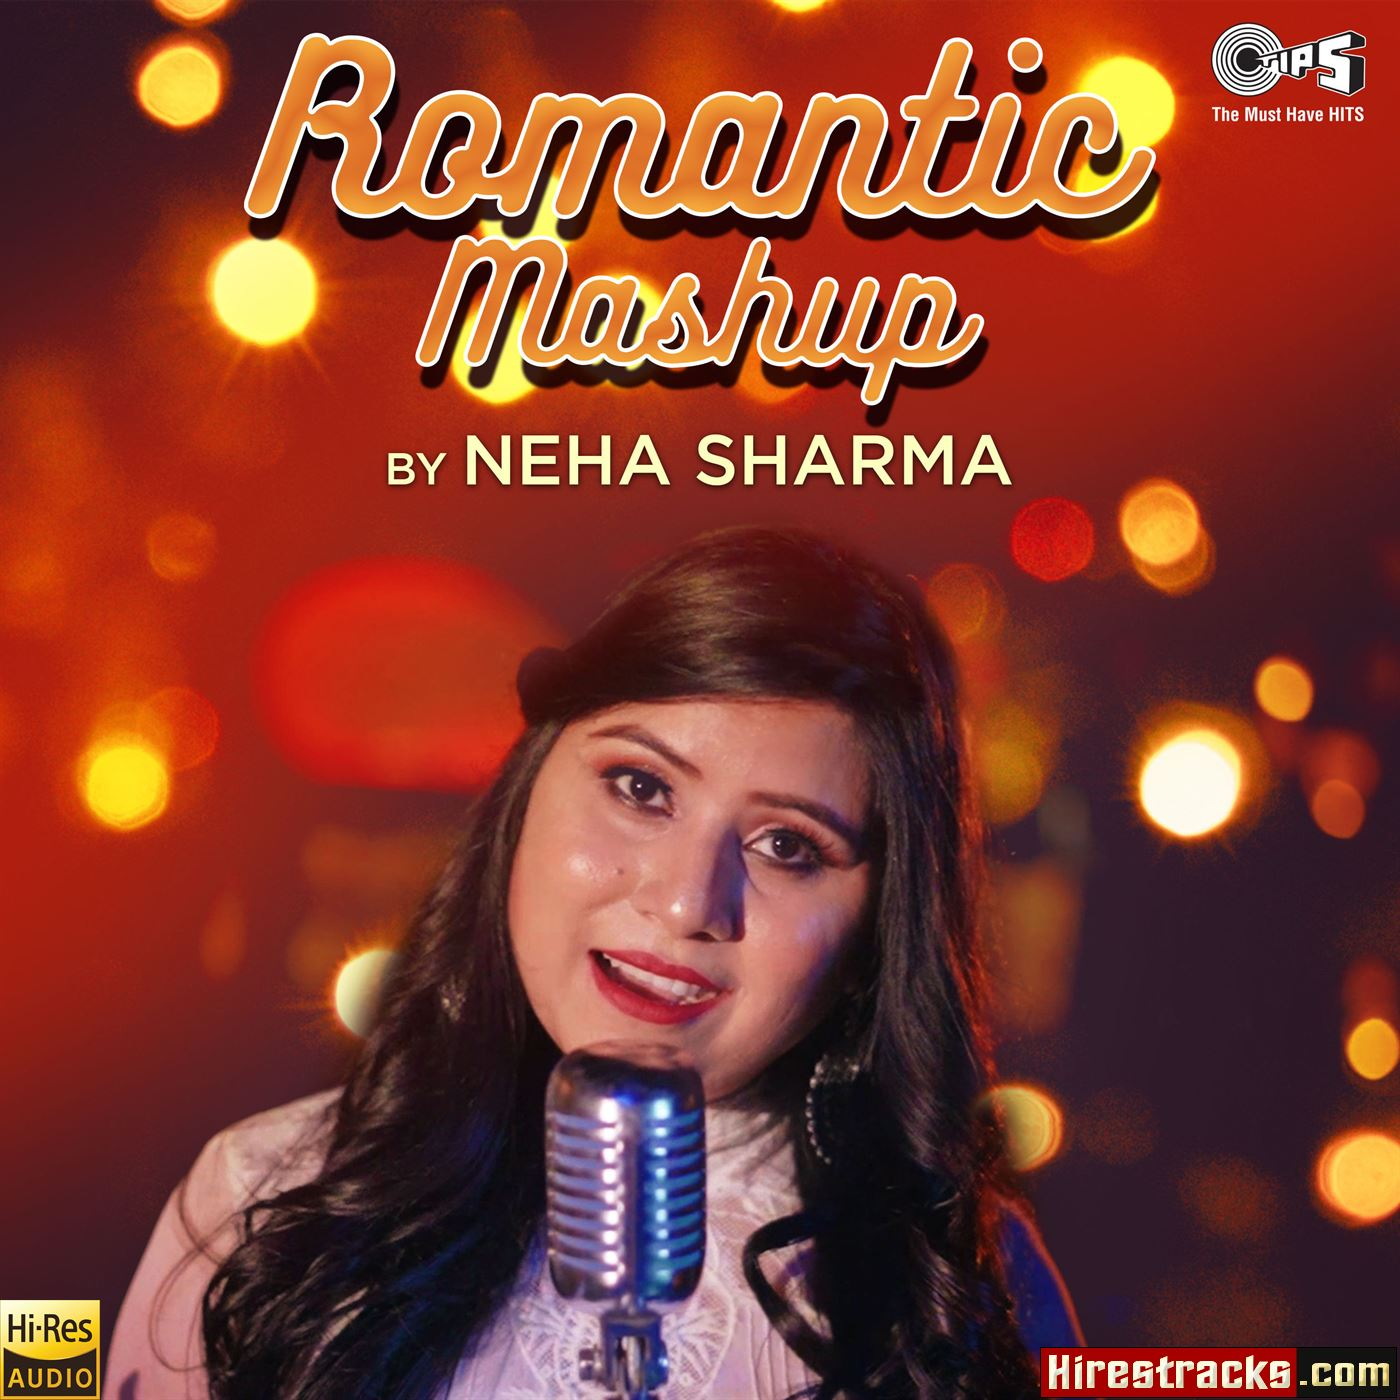 Romantic Mashup (2019) (Neha Sharma) (TIPS Music) [24 BIT – 96 KHZ] [Digital-DL-FLAC]